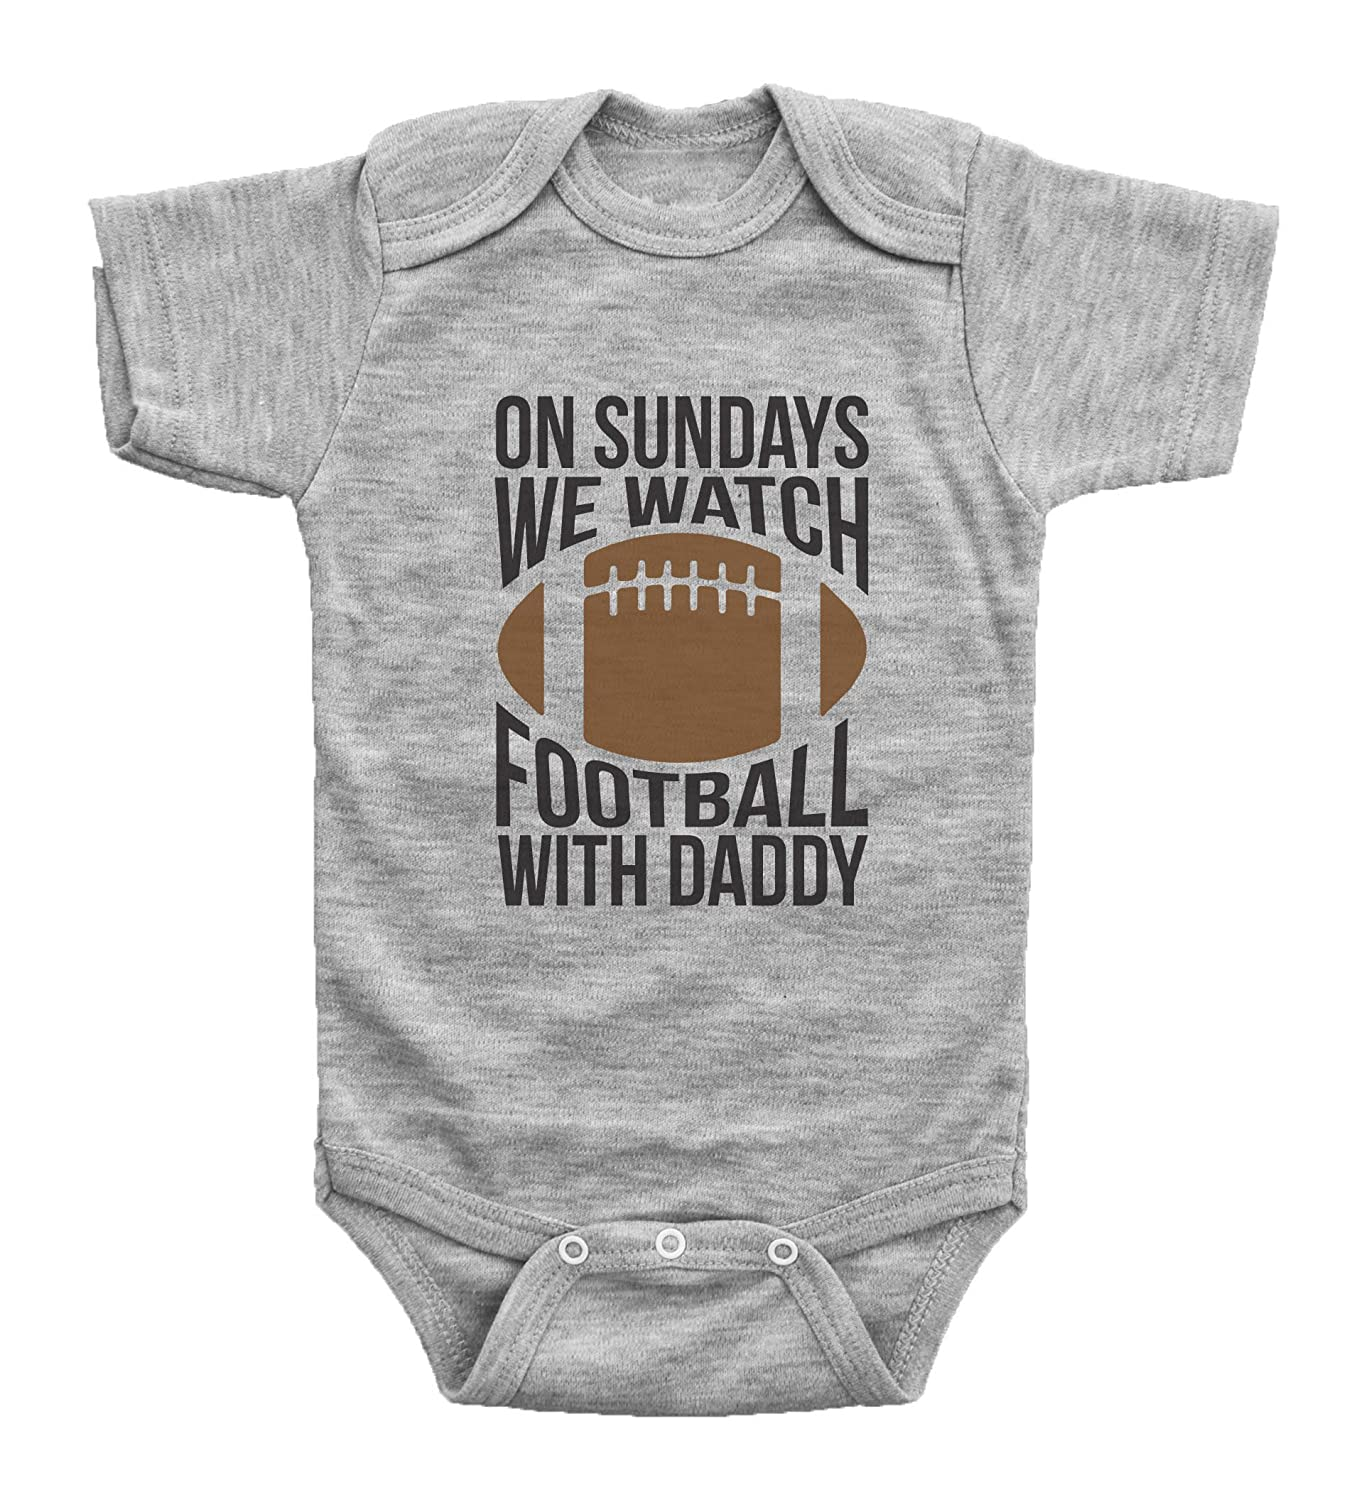 b29a6f0df Amazon.com: Baffle Funny Football Onesies for Babies/ON Sundays, Football  W/Daddy: Clothing